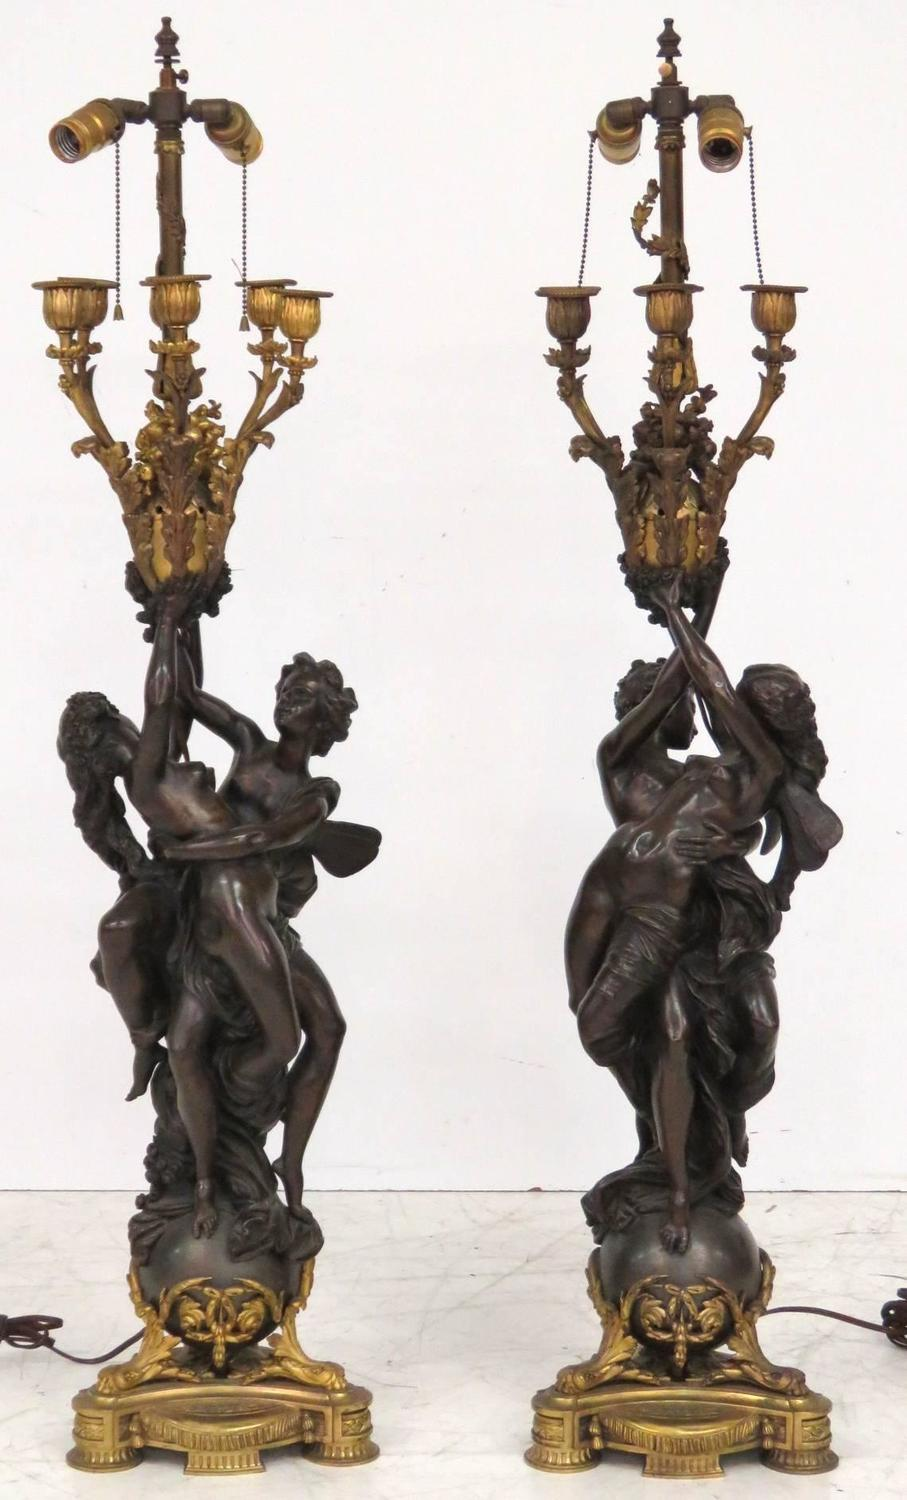 Pair Of Antique French Figural Bronze Candelabras At 1stdibs